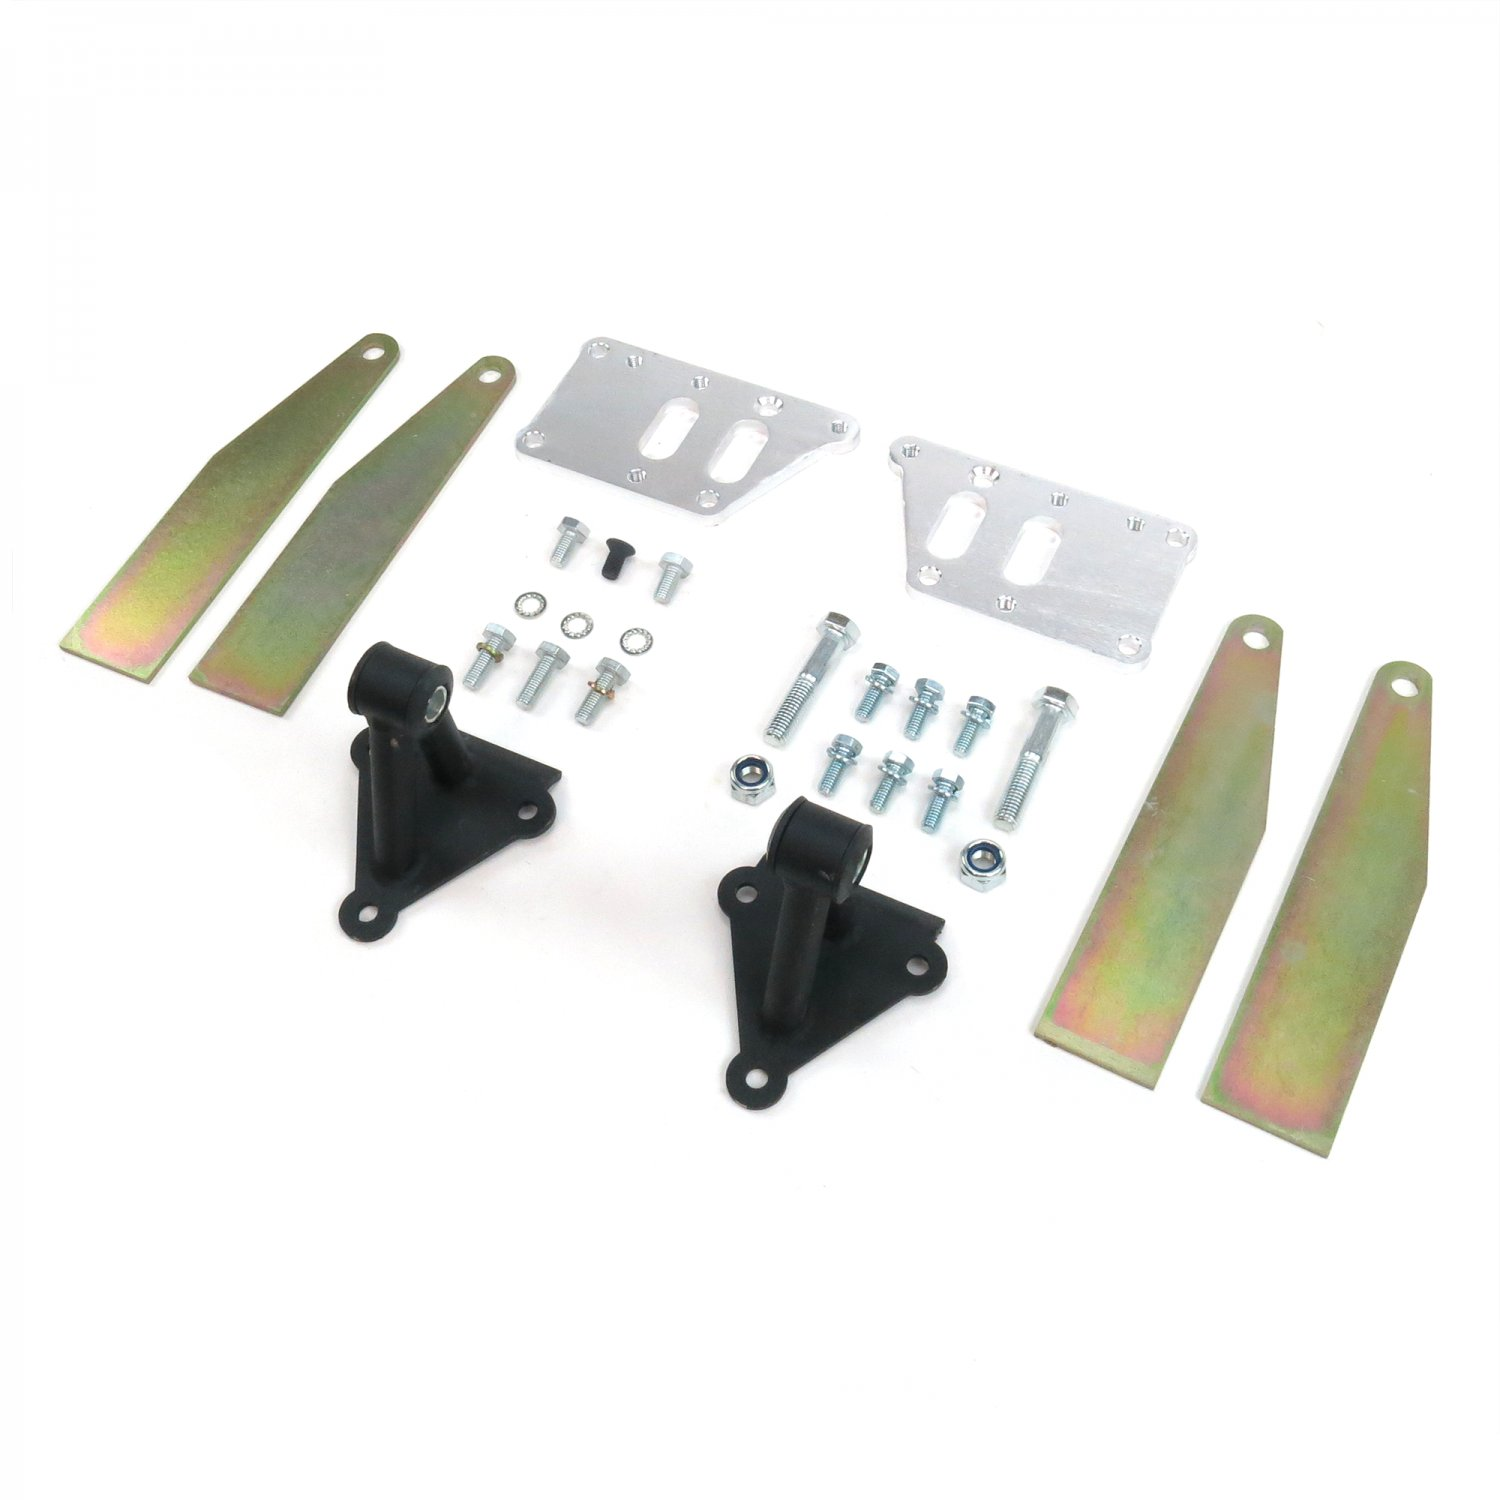 Gm Ls3 Engine Uk: LS1, LS2, LS3, LS6, LS Engine Motor Mounts (LS Conversion